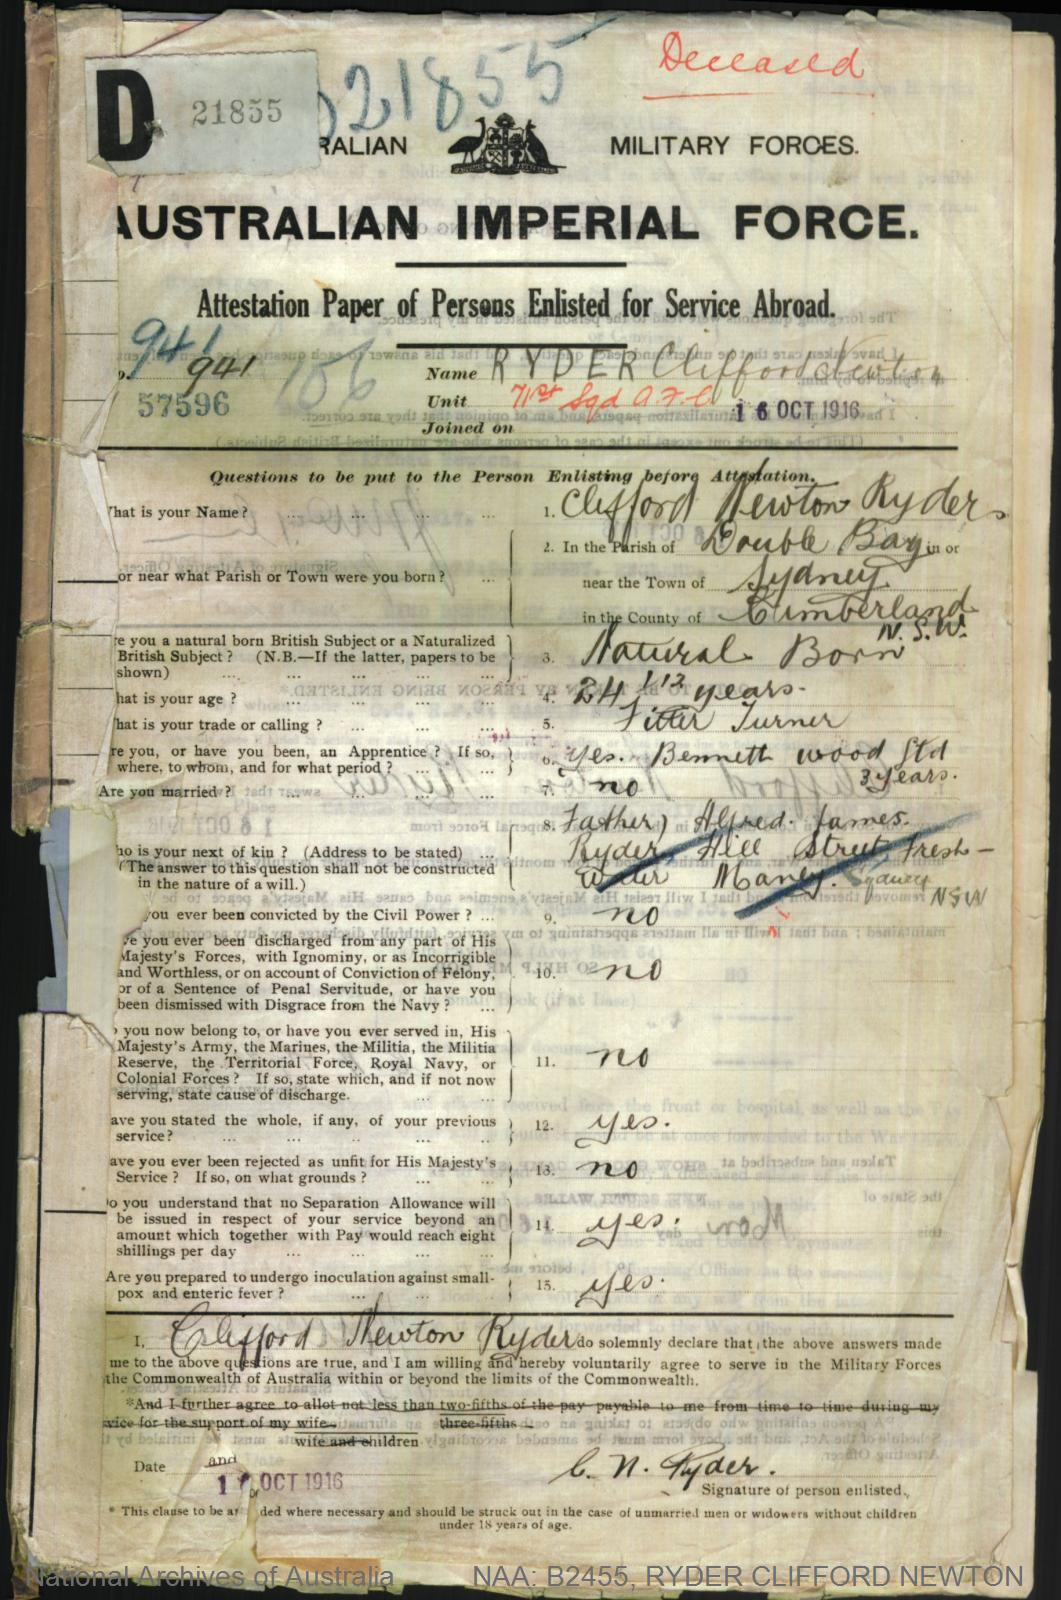 RYDER Clifford Newton : Service Number - 941 : Place of Birth - Sydney NSW : Place of Enlistment - Sydney NSW : Next of Kin - (Father) RYDER Alfred James